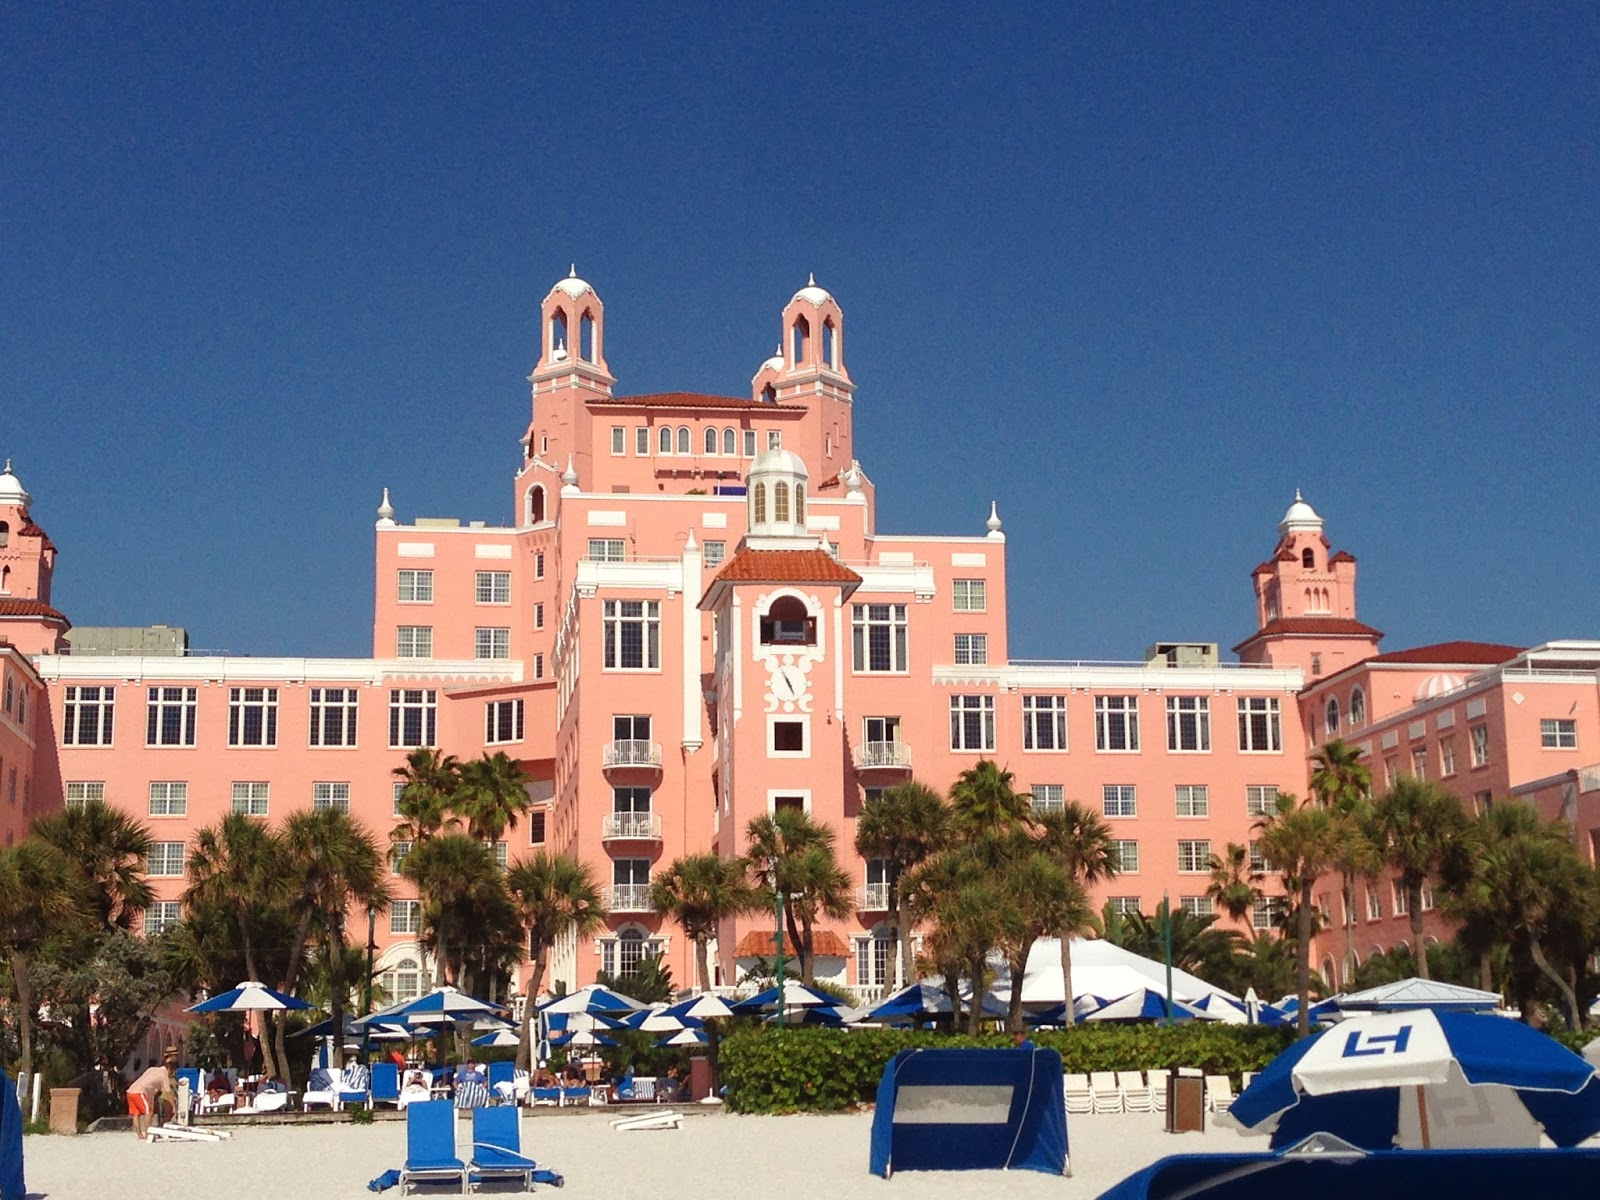 I Arrived To The Loews Don Cesar Hotel On Tuesday Night Have A S Trip Staycation With My Friend Amanda Is Property Which Rich